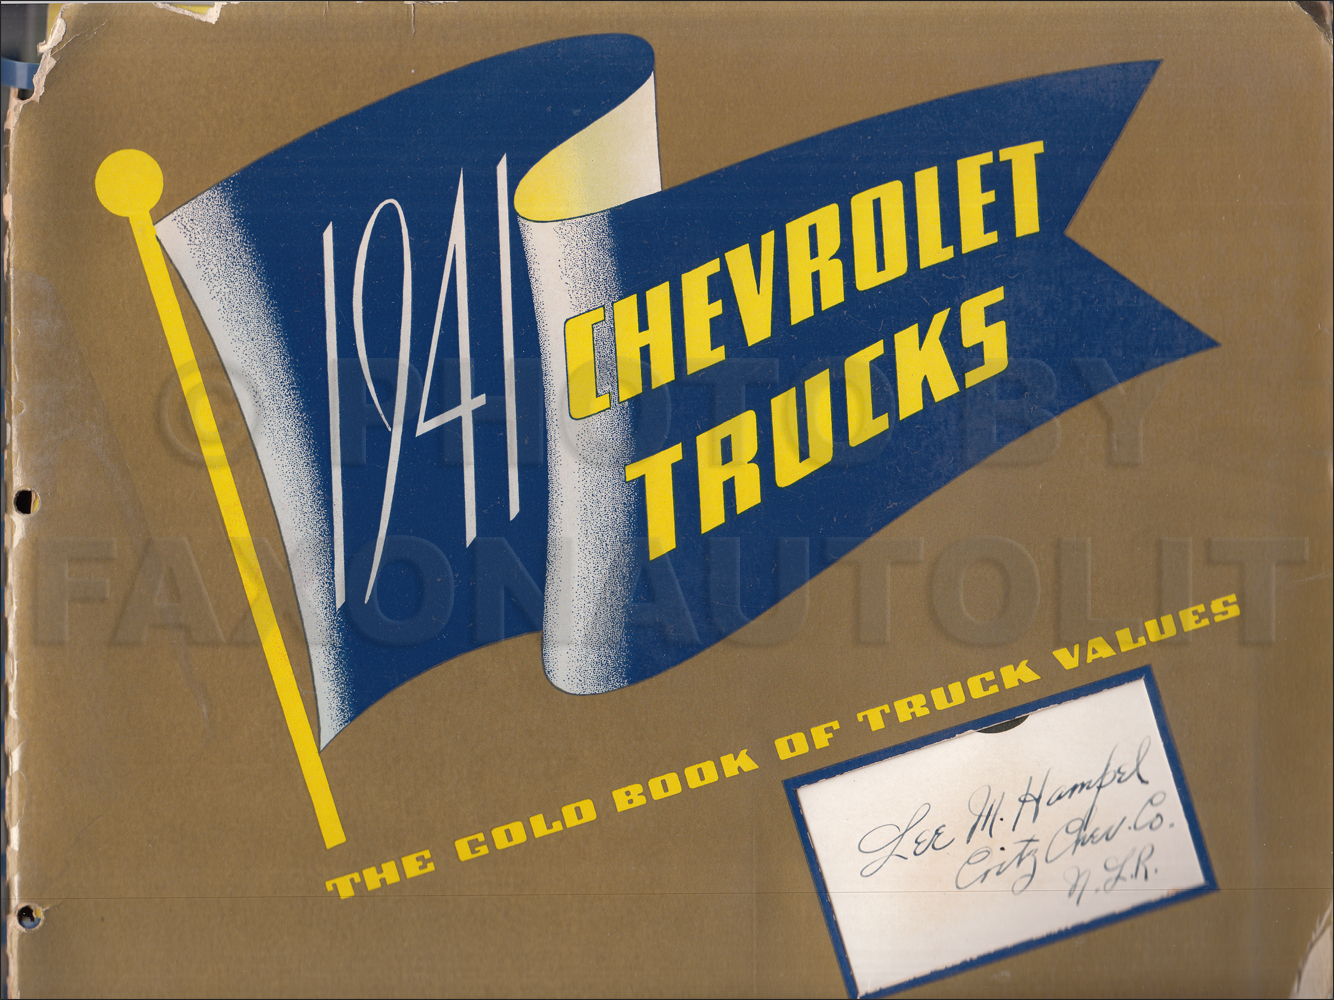 1941 Chevrolet Truck Dealer Album Original